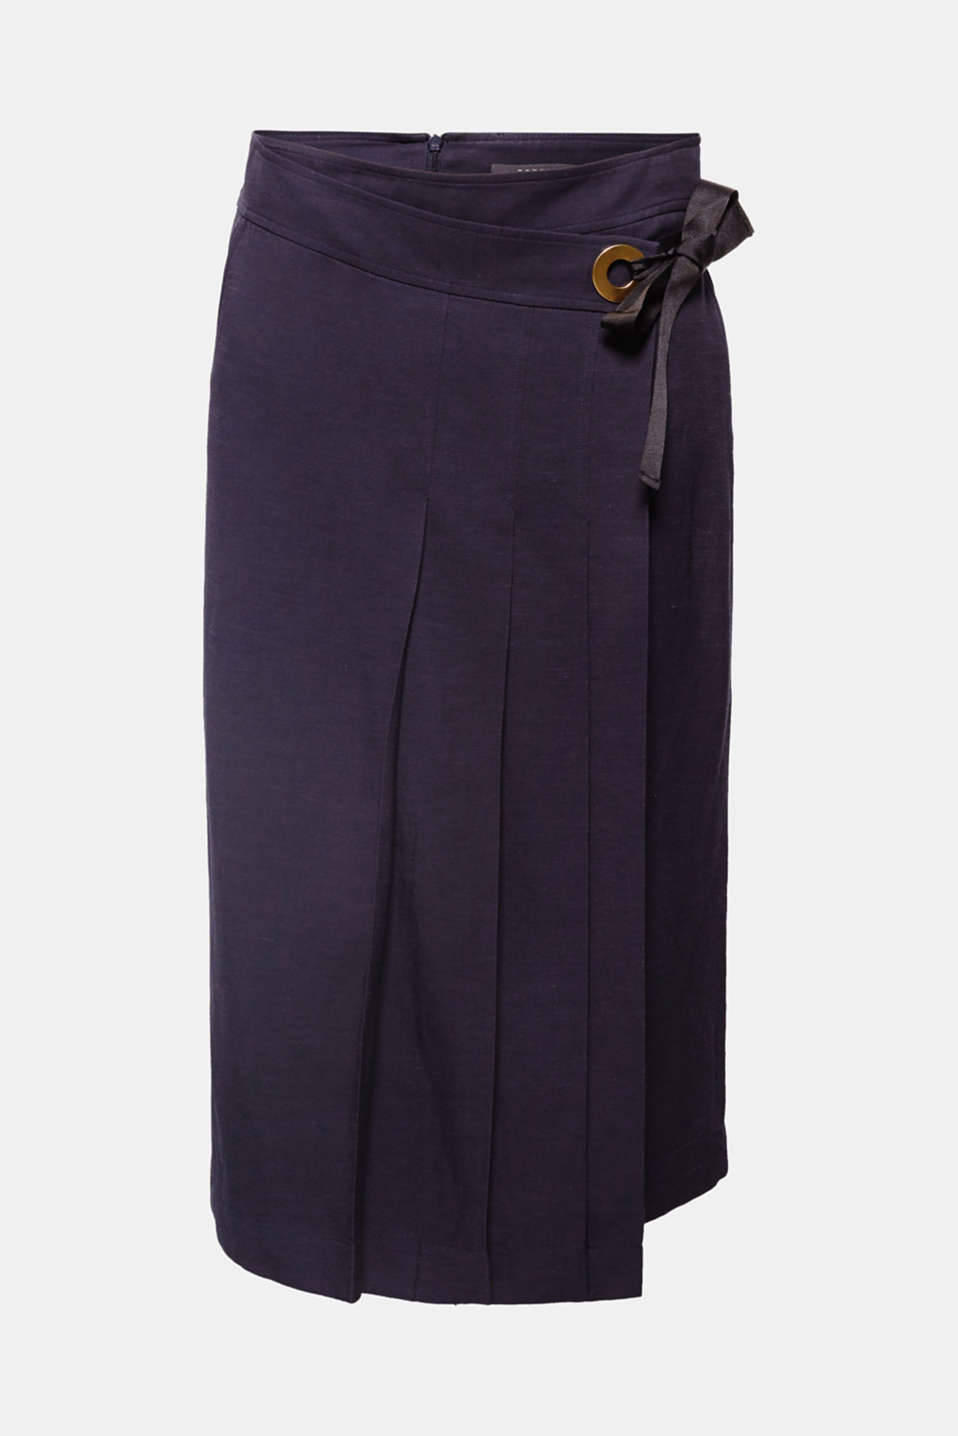 These culottes made of a cool linen blend with a sophisticated pleated front in a feminine wrap-over look are brand new!